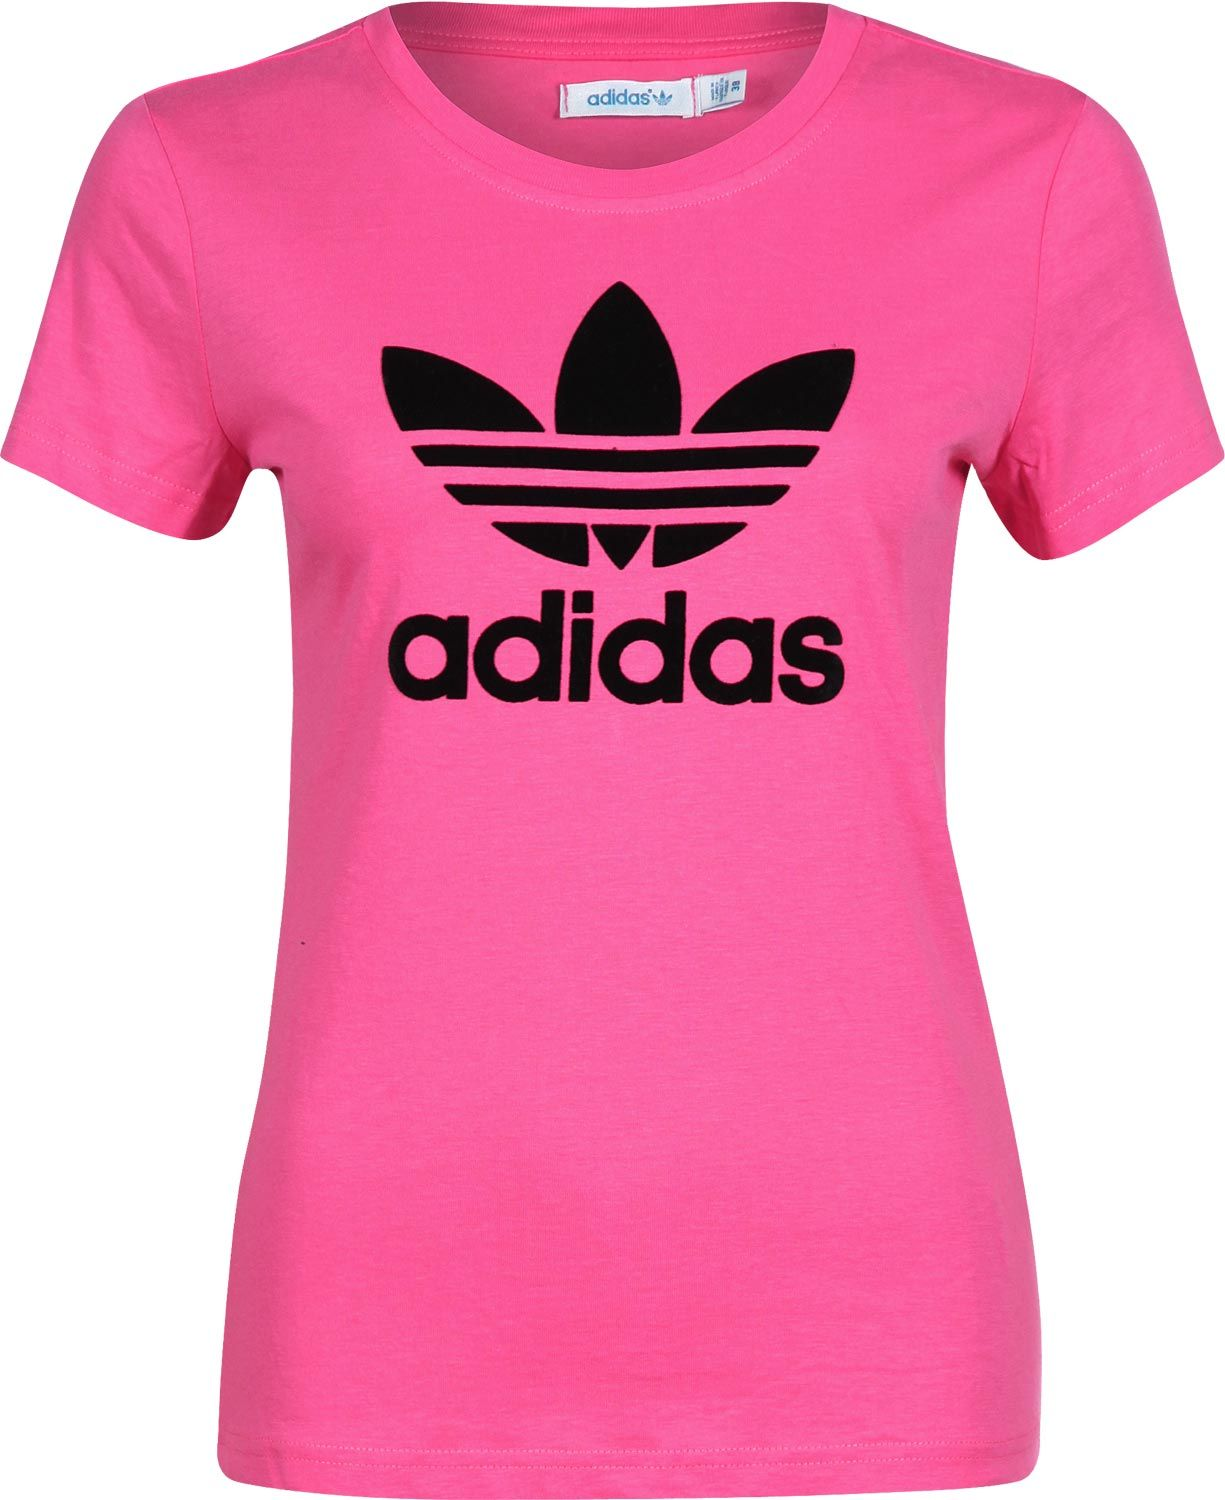 Pin by Rhonda Hutson on T-shirts | Pinterest | Pink, Adidas and Love